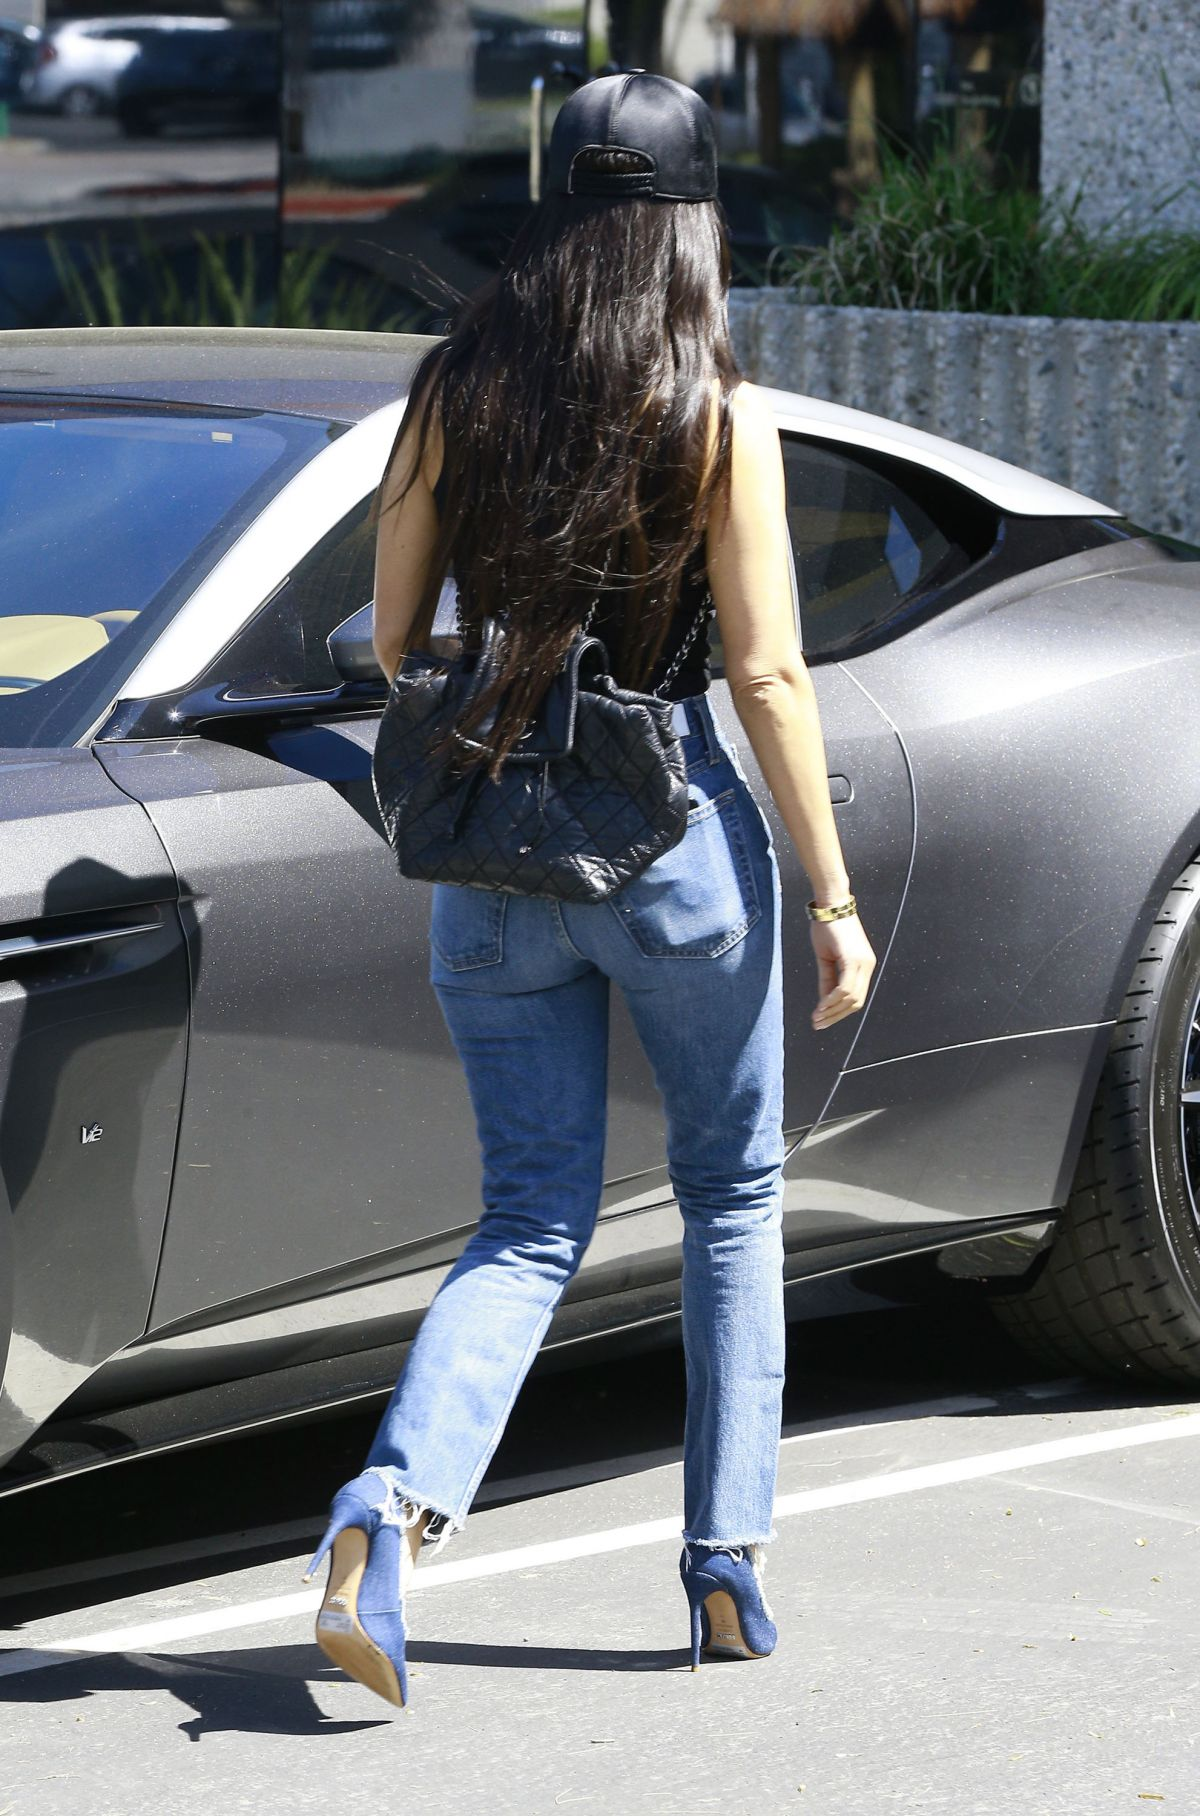 Kourtney Kardashian In Jeans Leaves A Studio In Calabasas 03 29